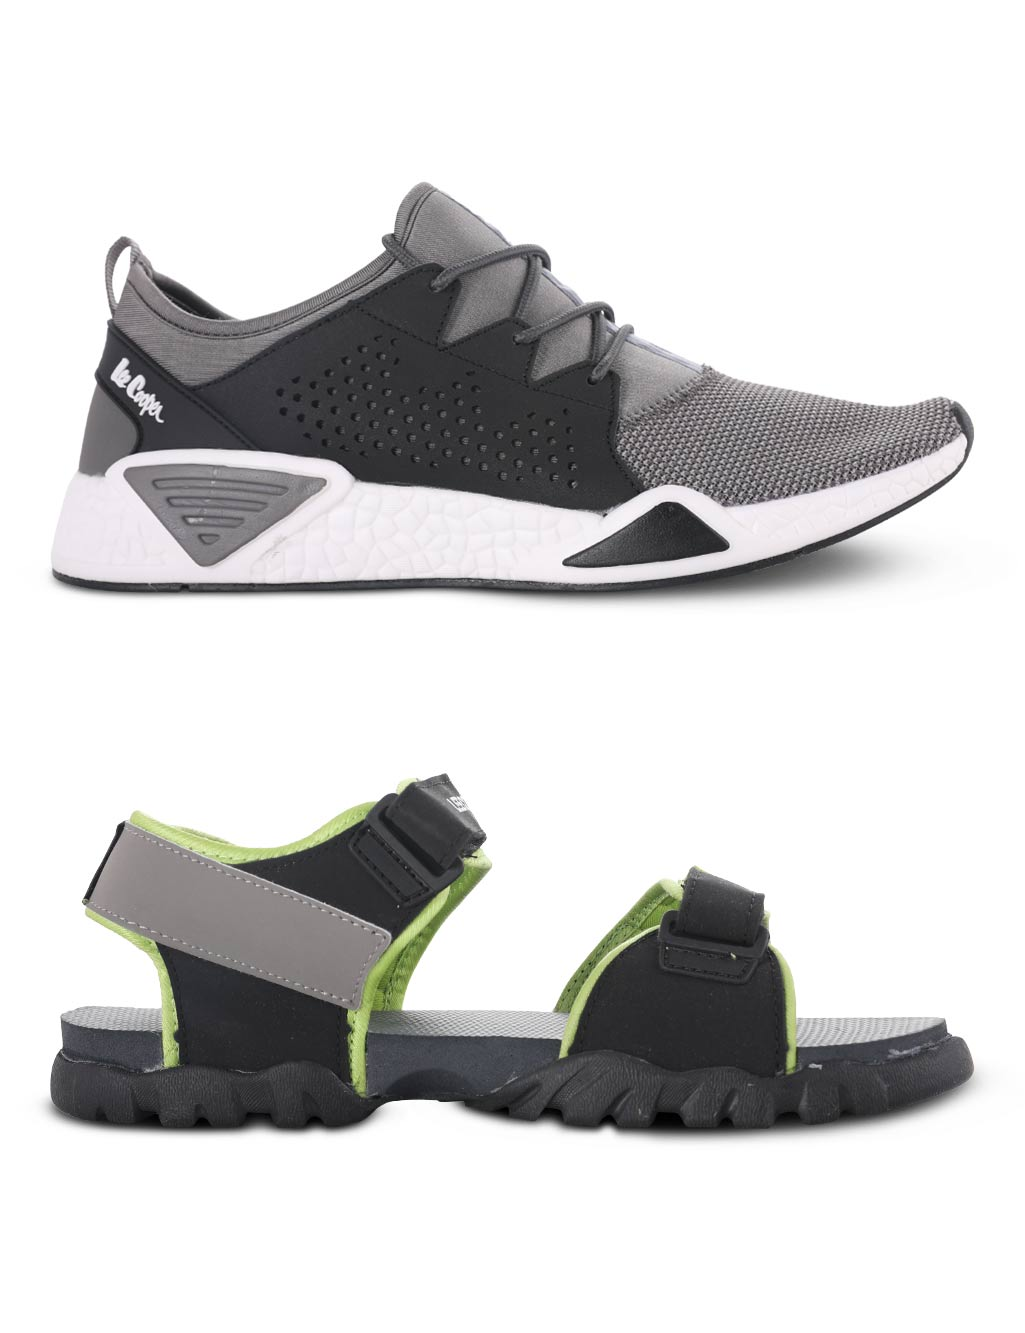 d795e9de0e9f Lee Cooper 1 Grey Sports Shoe + 1 Lime Sandal - Buy Online at Best Prices